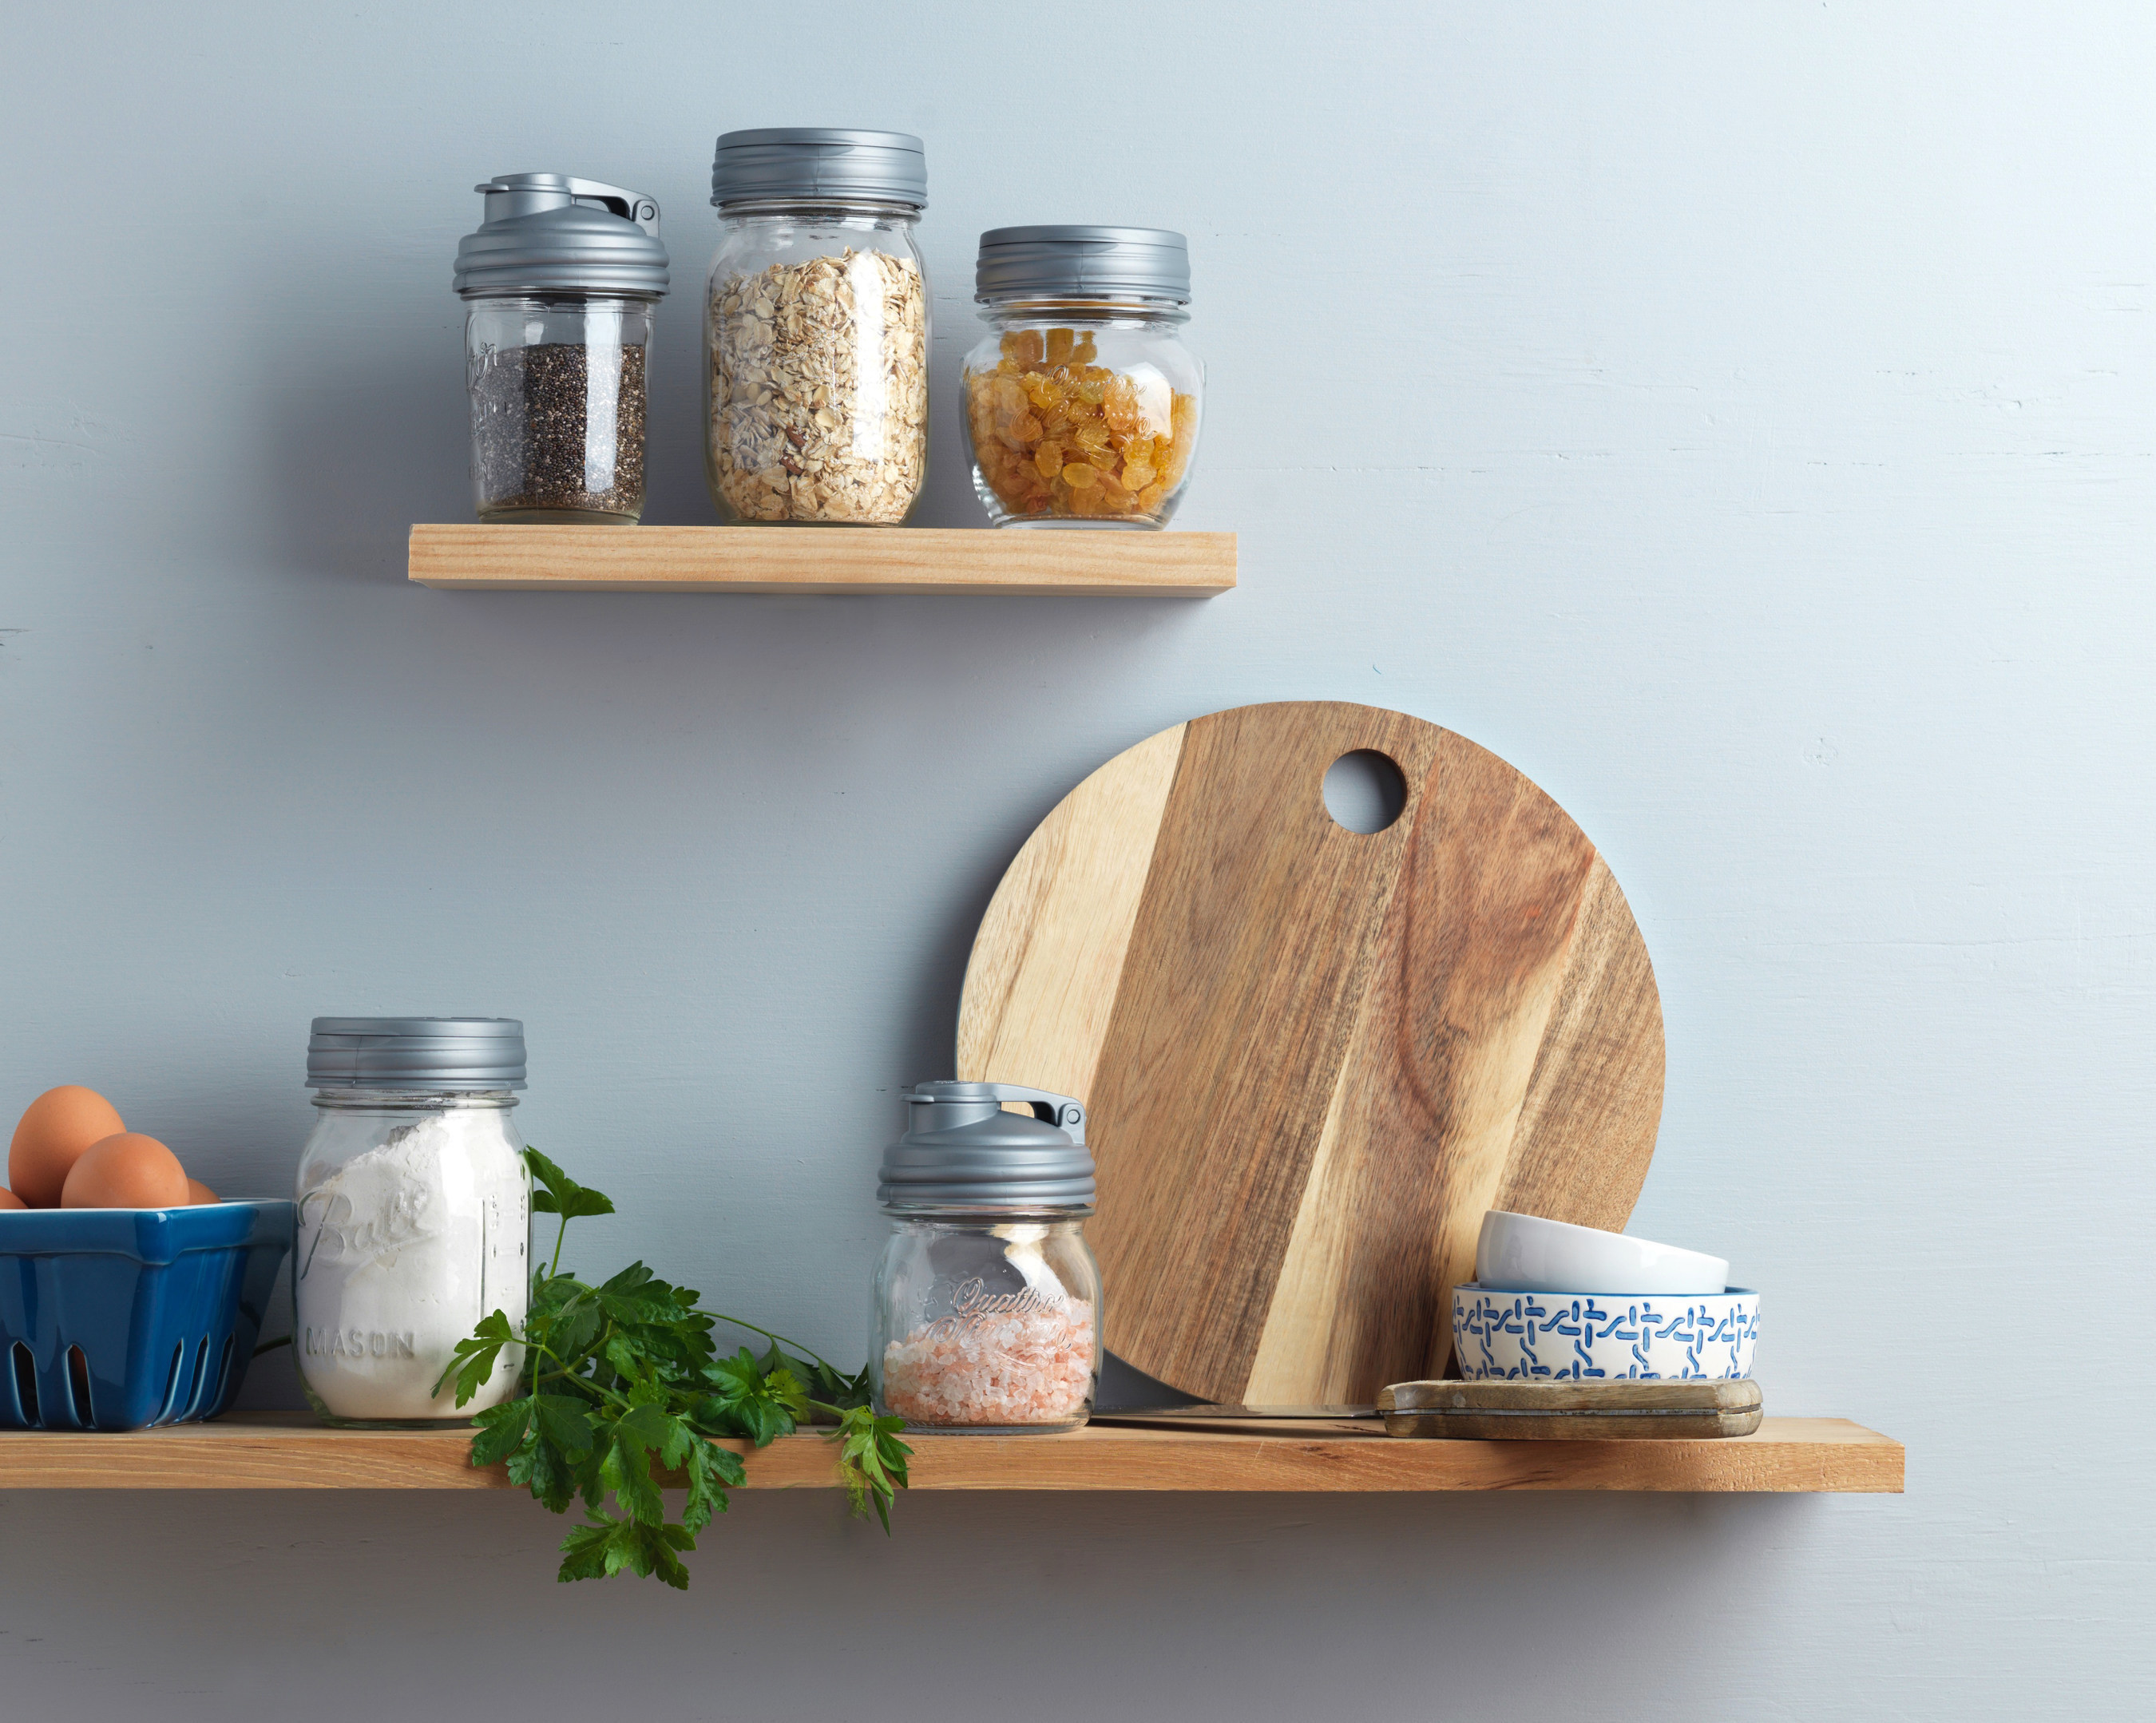 reCAP Mason Jars To Unveil New Products At The 2016 International Home + Housewares Show